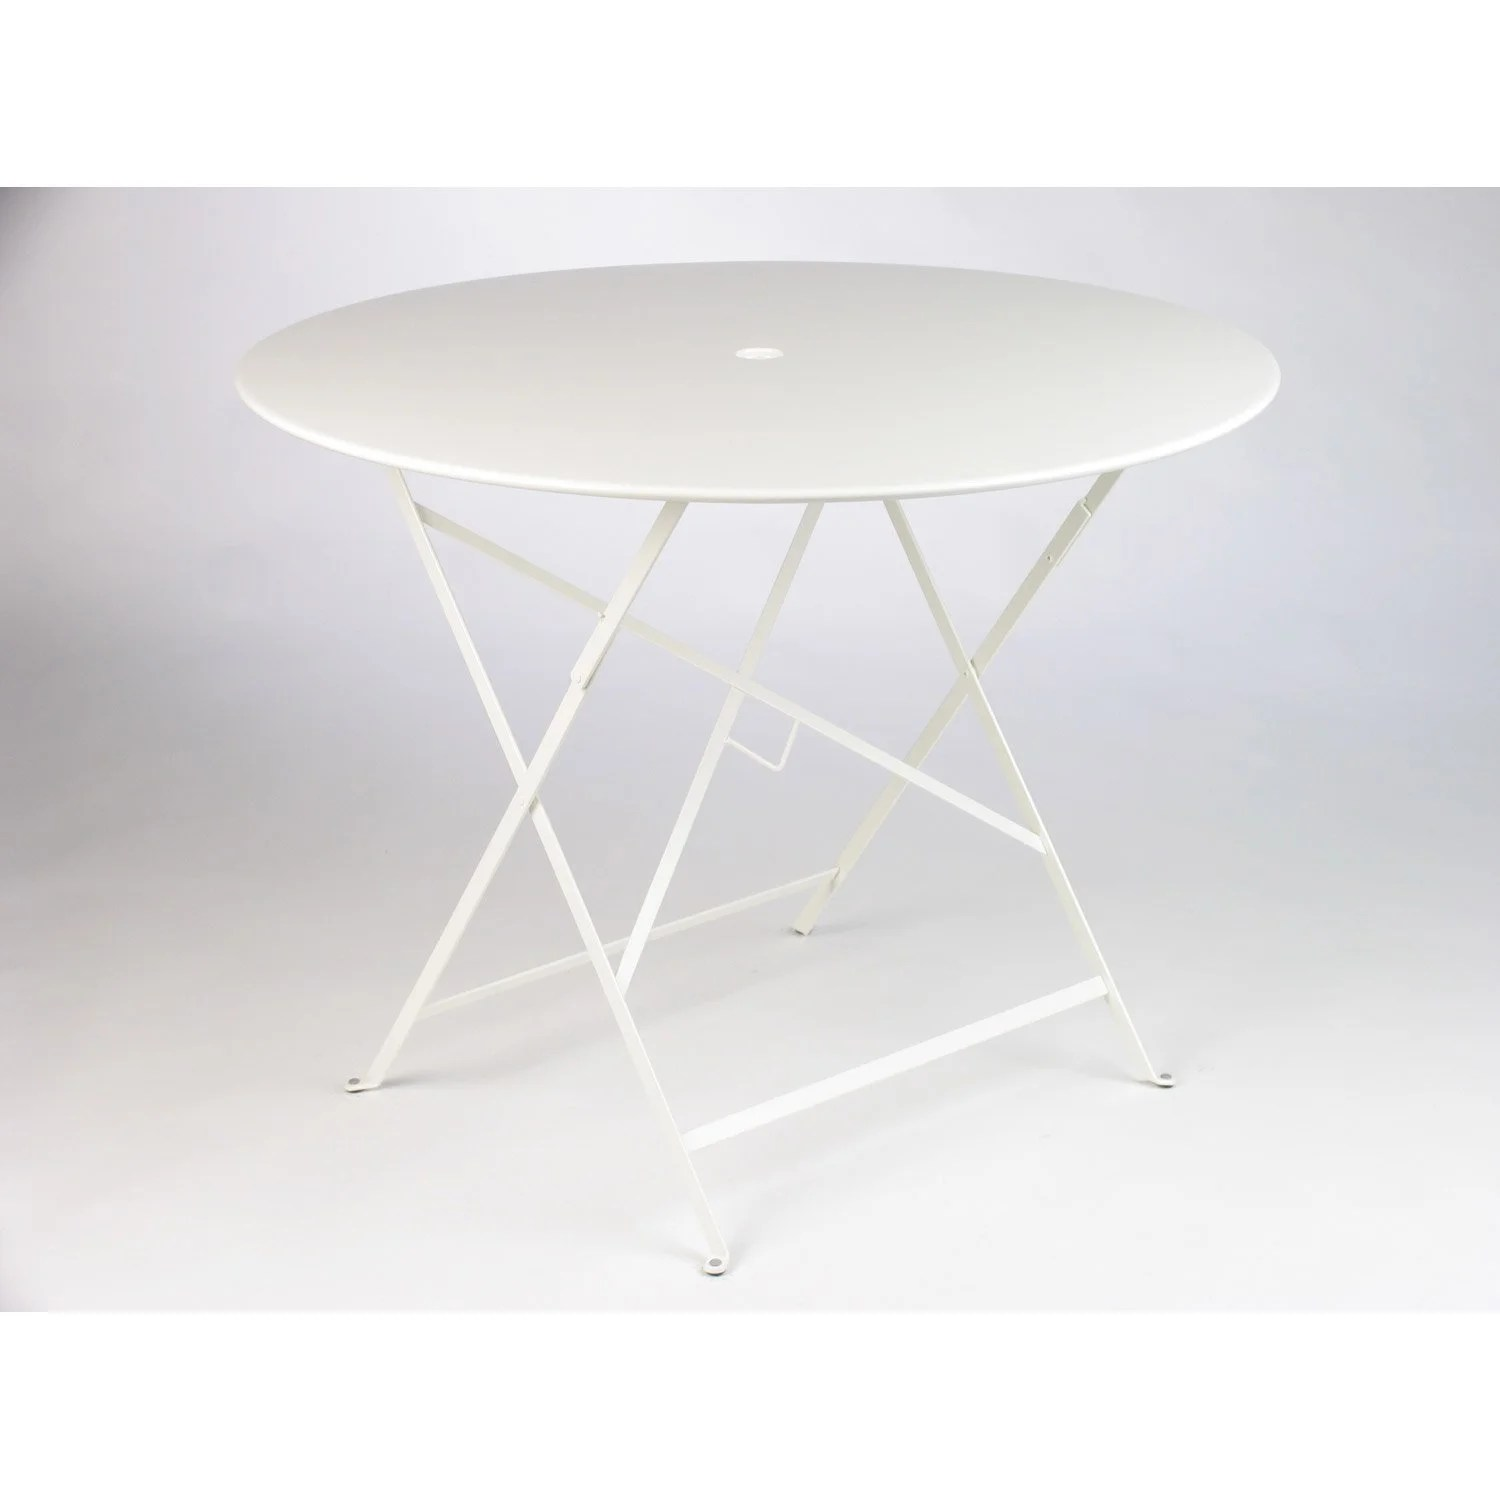 Table Jardin Blanche Ronde | Table Ronde A Rallonges Design Mr66 ...